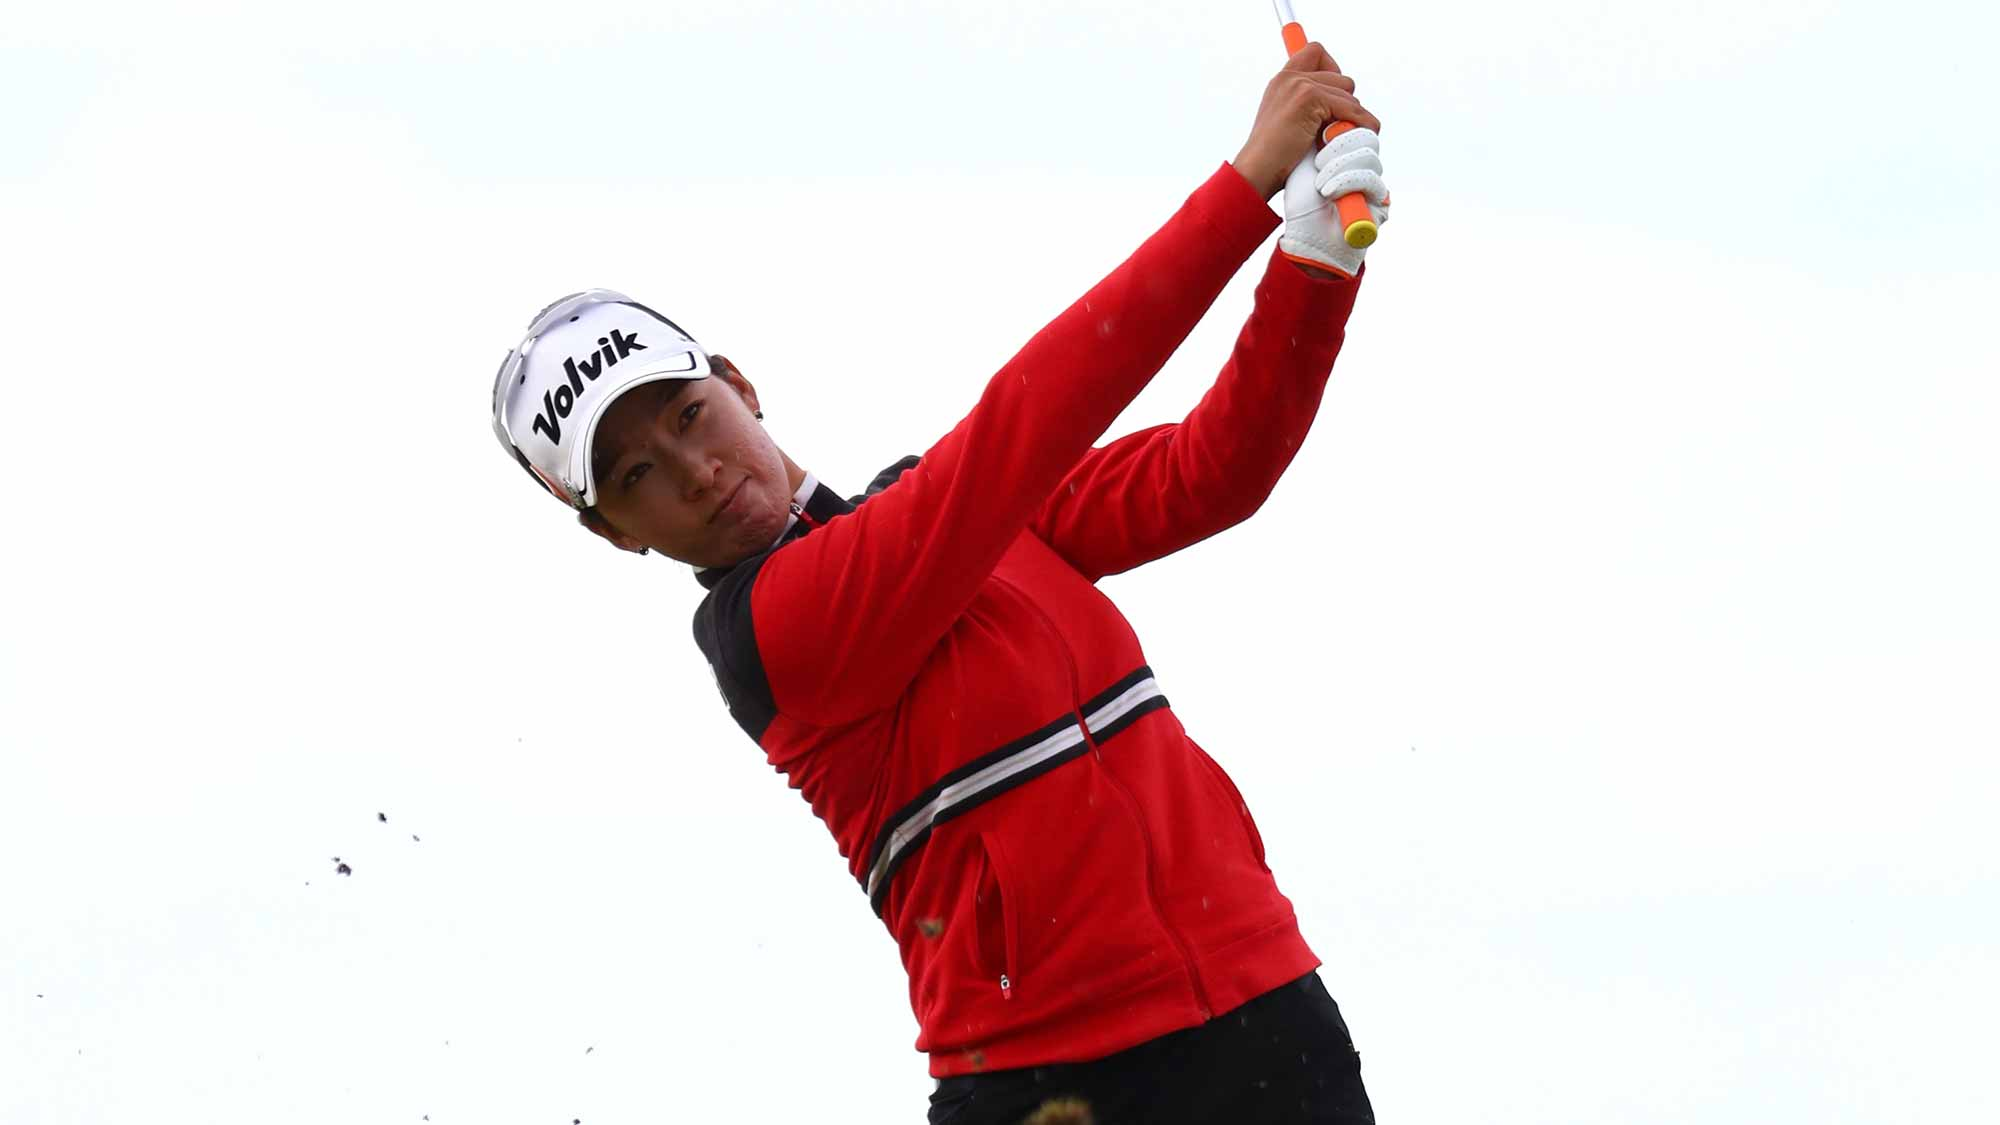 Chella Choi of Korea hits her second shot on the 4th hole during the third round of the Ricoh Women's British Open at Kingsbarns Golf Links